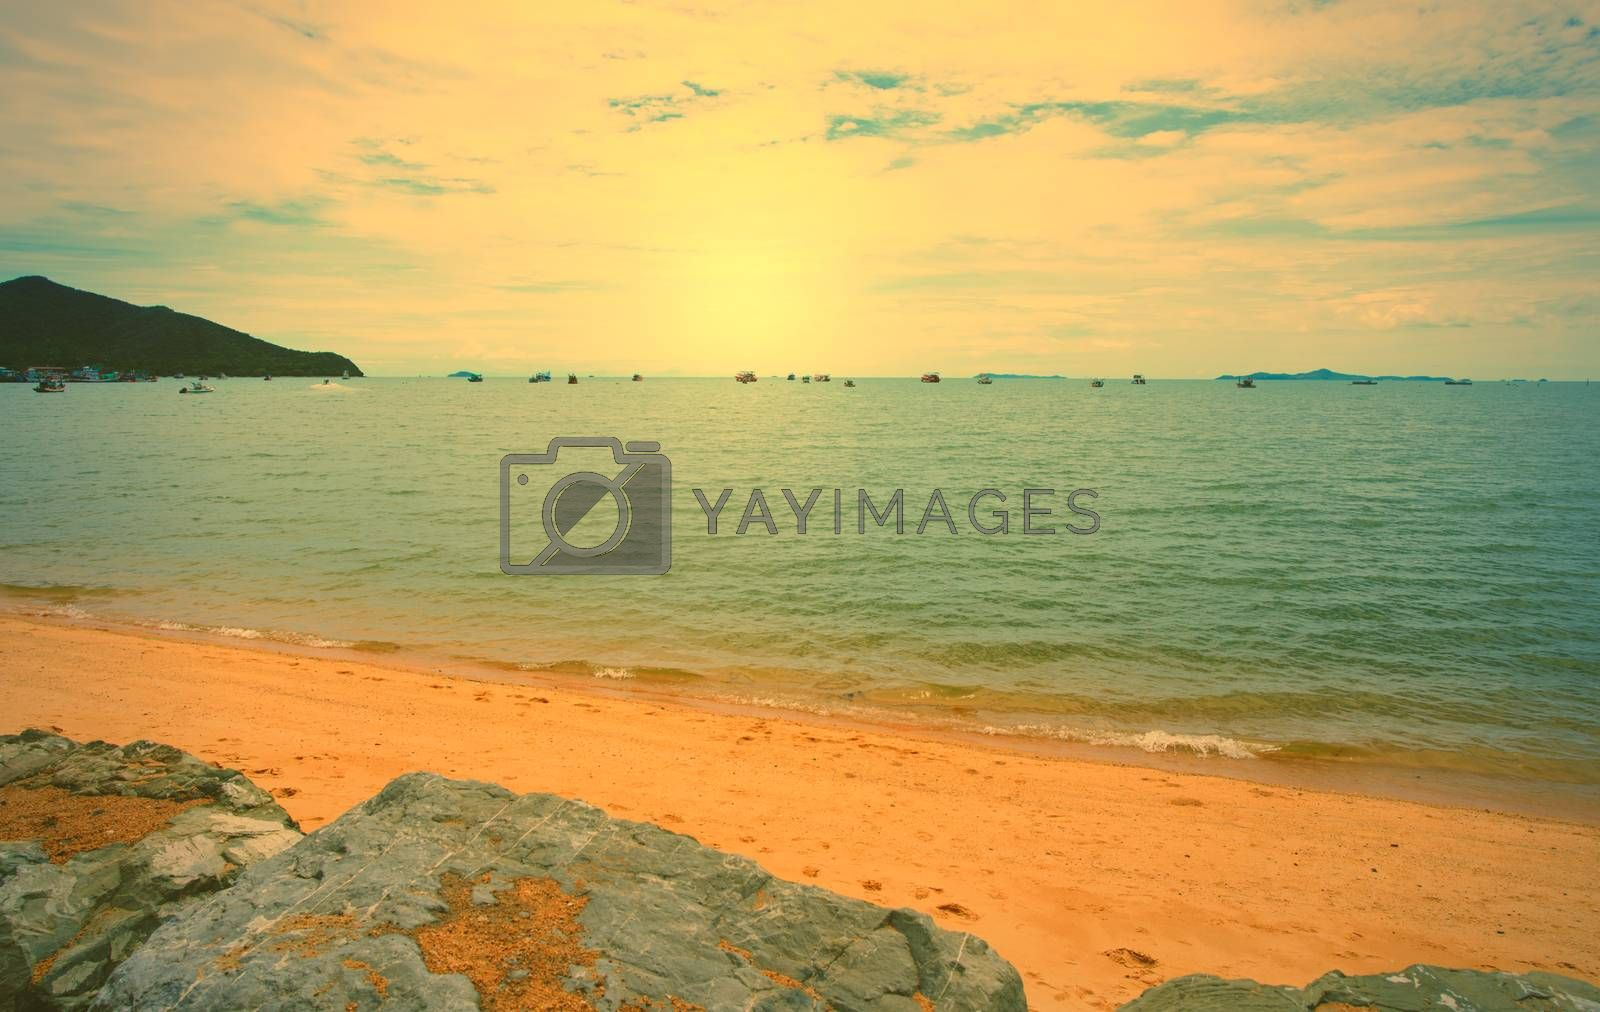 Abstract Vintage view of the sea in the fishing district of Thailand in the morning at sunrise.